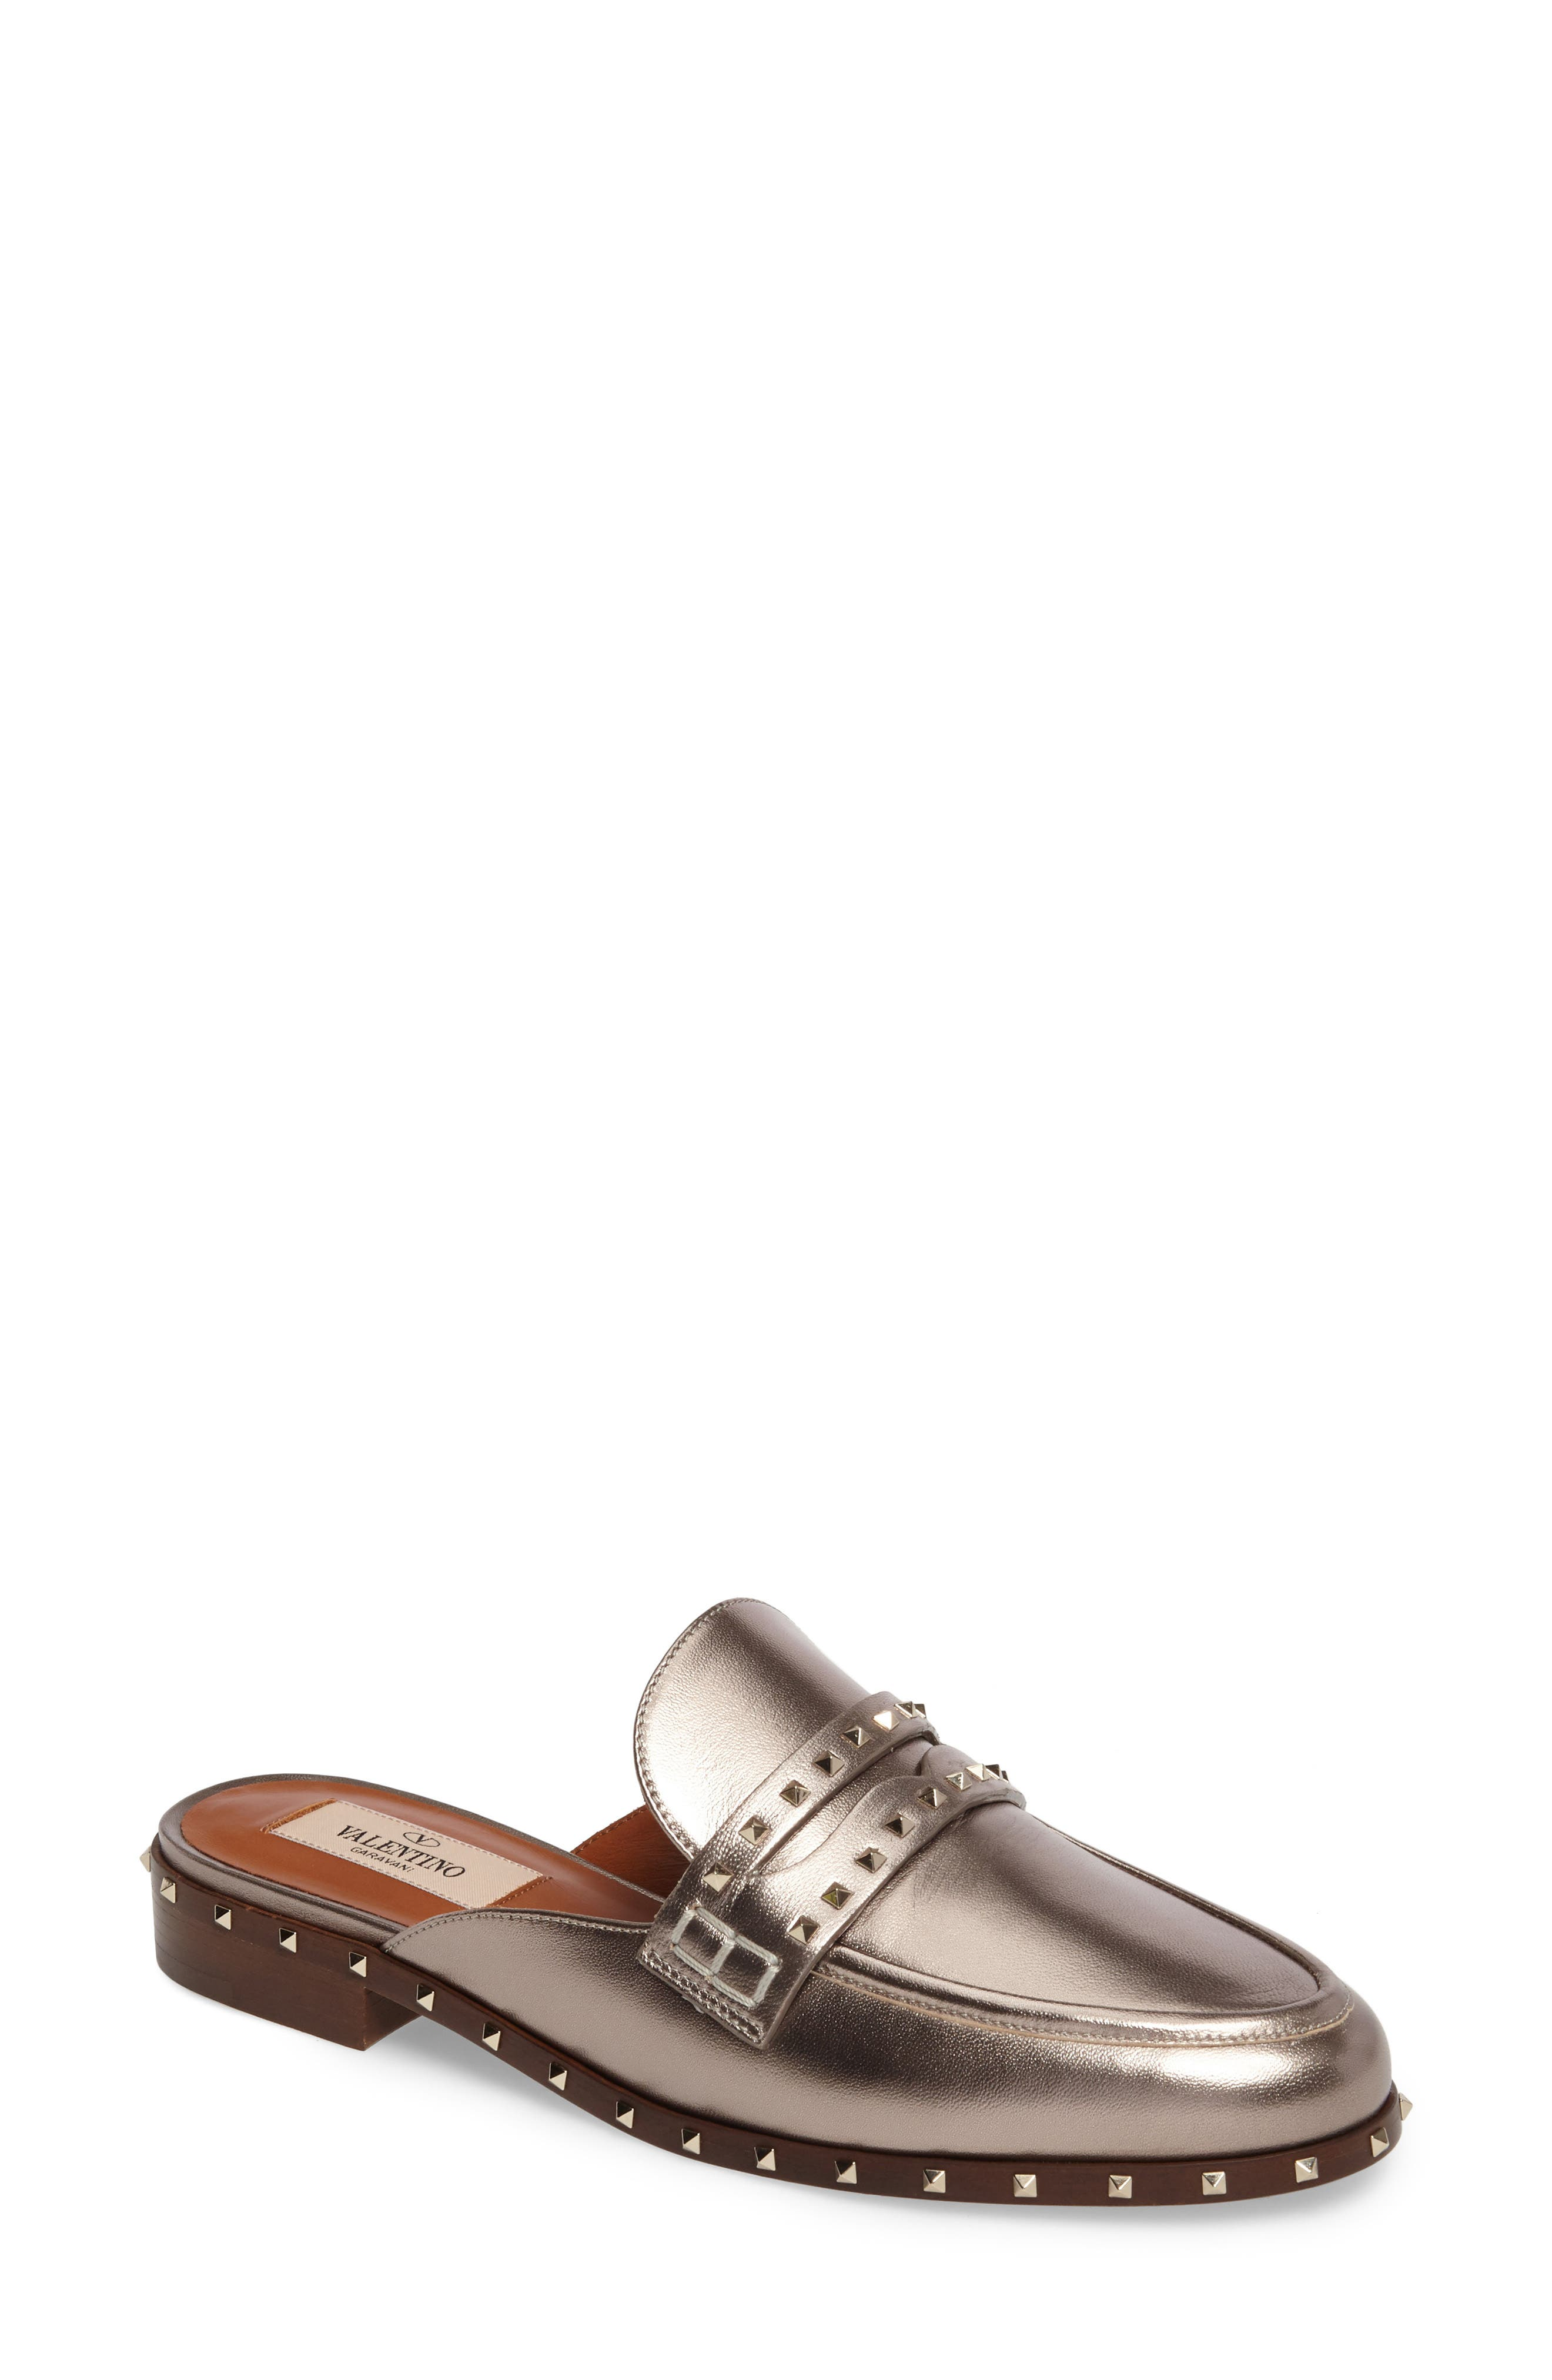 Alternate Image 1 Selected - Valentino Soul Rockstud Mule (Women)